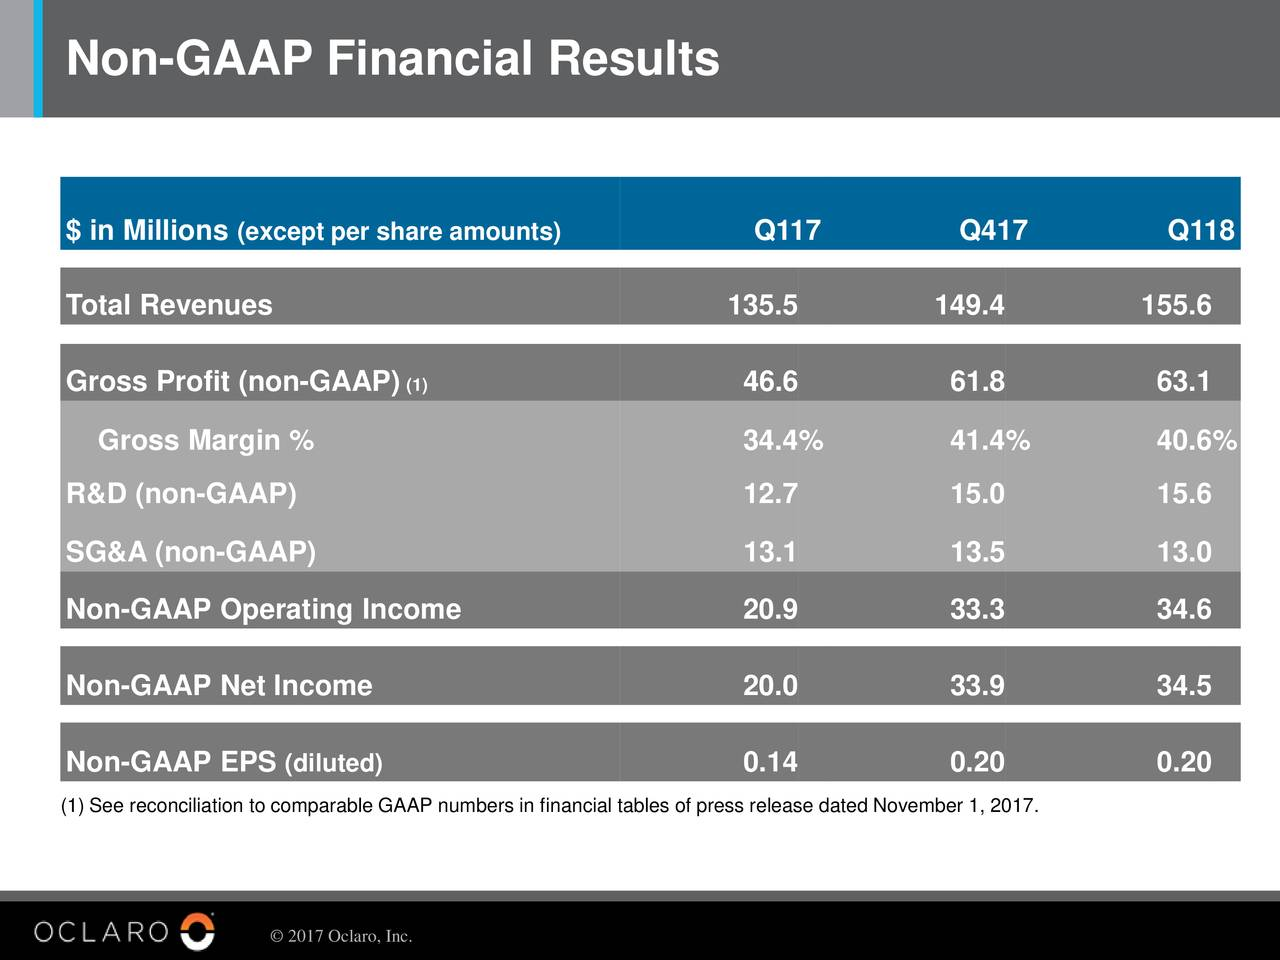 $ in Millions(except per share amounts) Q117 Q417 Q118 Total Revenues 135.5 149.4 155.6 Gross Profit (non-GAAP) (1) 46.6 61.8 63.1 Gross Margin % 34.4% 41.4% 40.6% R&D (non-GAAP) 12.7 15.0 15.6 SG&A (non-GAAP) 13.1 13.5 13.0 Non-GAAP Operating Income 20.9 33.3 34.6 Non-GAAP Net Income 20.0 33.9 34.5 Non-GAAP EPS (diluted) 0.14 0.20 0.20 (1) See reconciliation to comparable GAAP numbers in financial tables of press release dated November 1, 2017. © 2017 Oclaro, Inc.